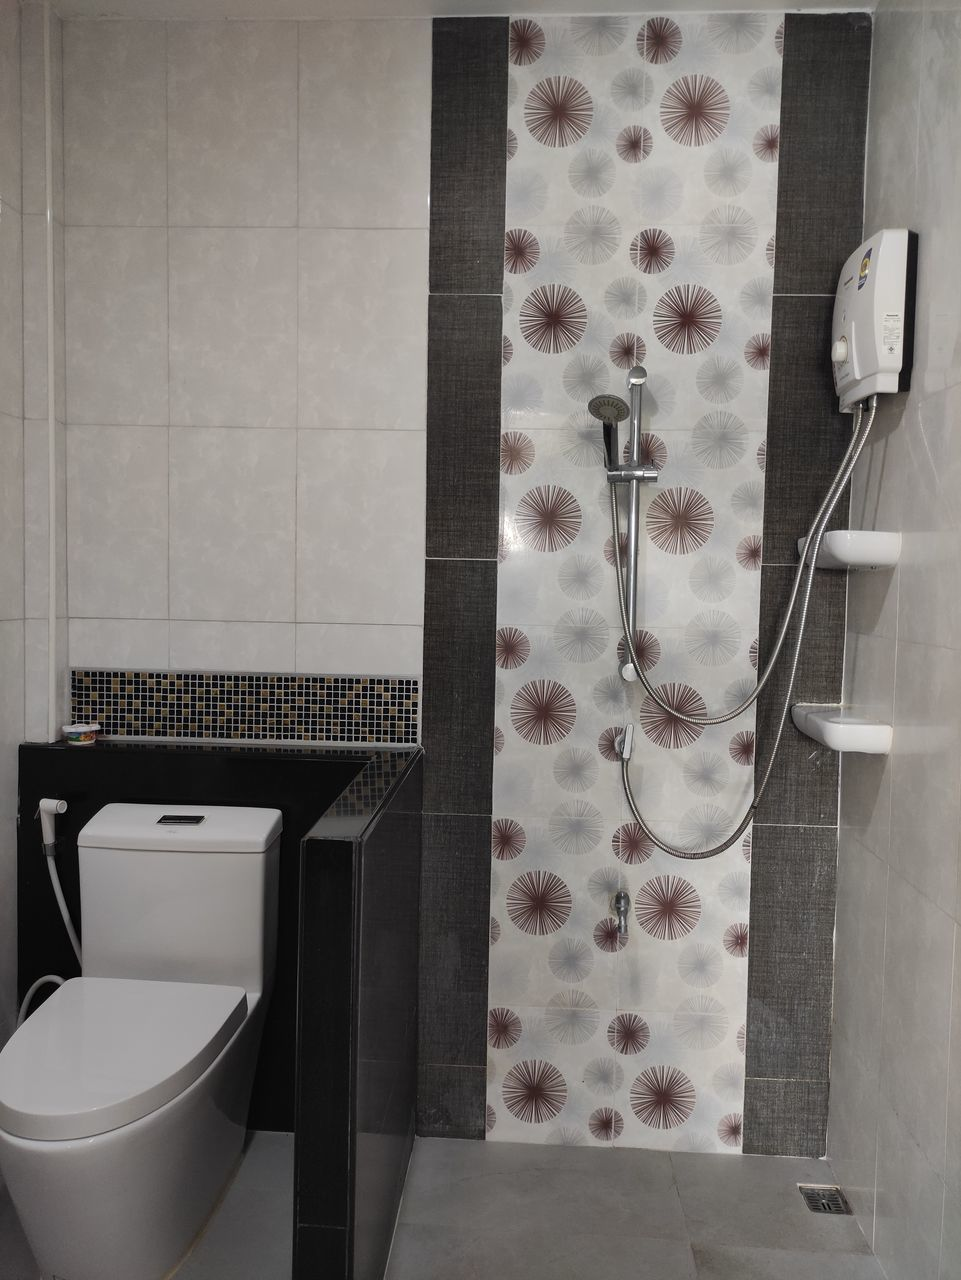 INTERIOR OF BATHROOM WITH TEXT